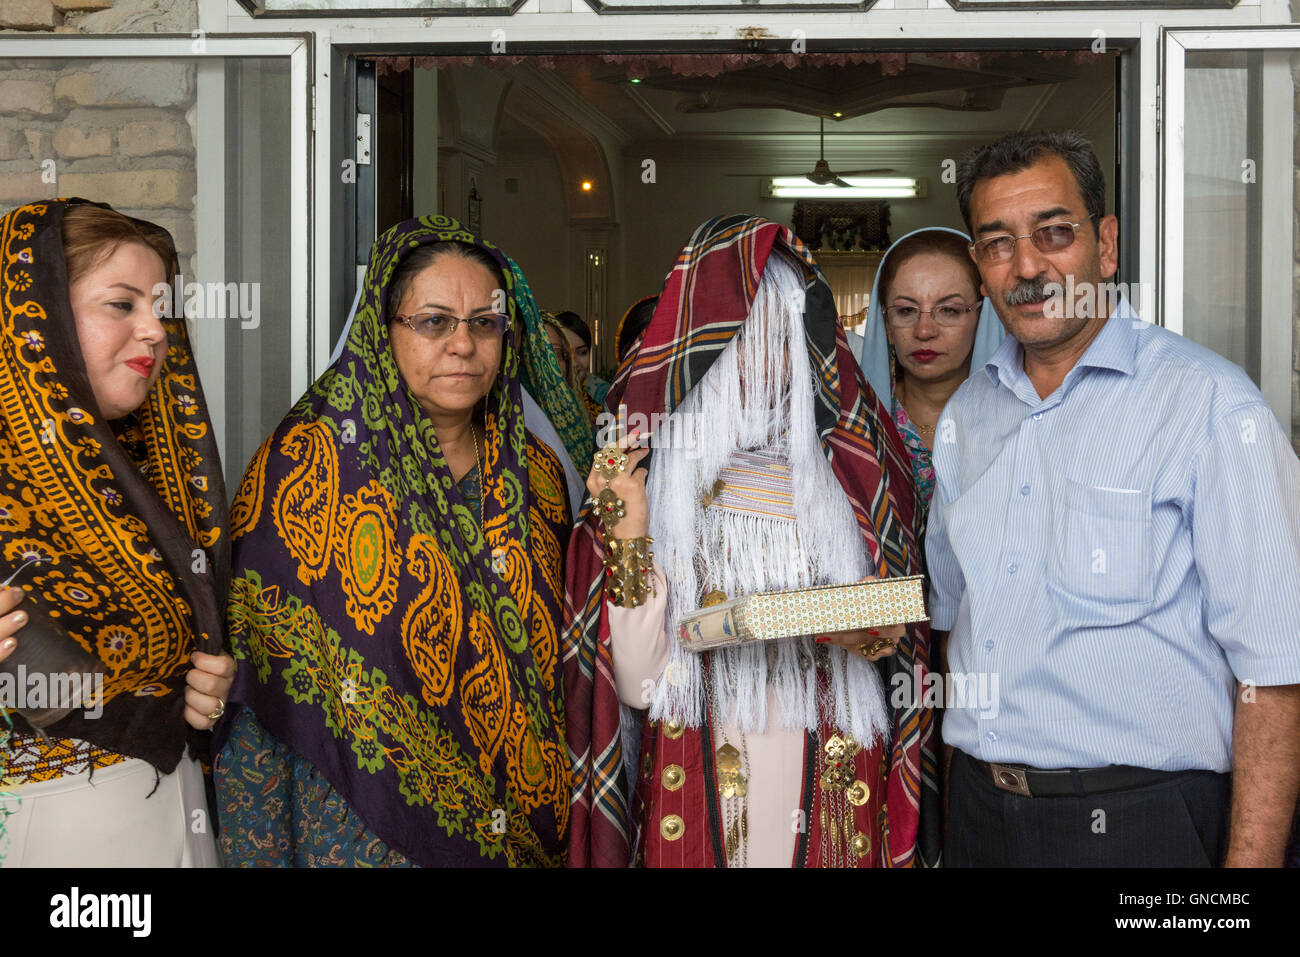 Bandar Torkaman, Turkmen Wedding, Bride Covered With Traditional Veil Exiting Lunch Venue - Stock Image